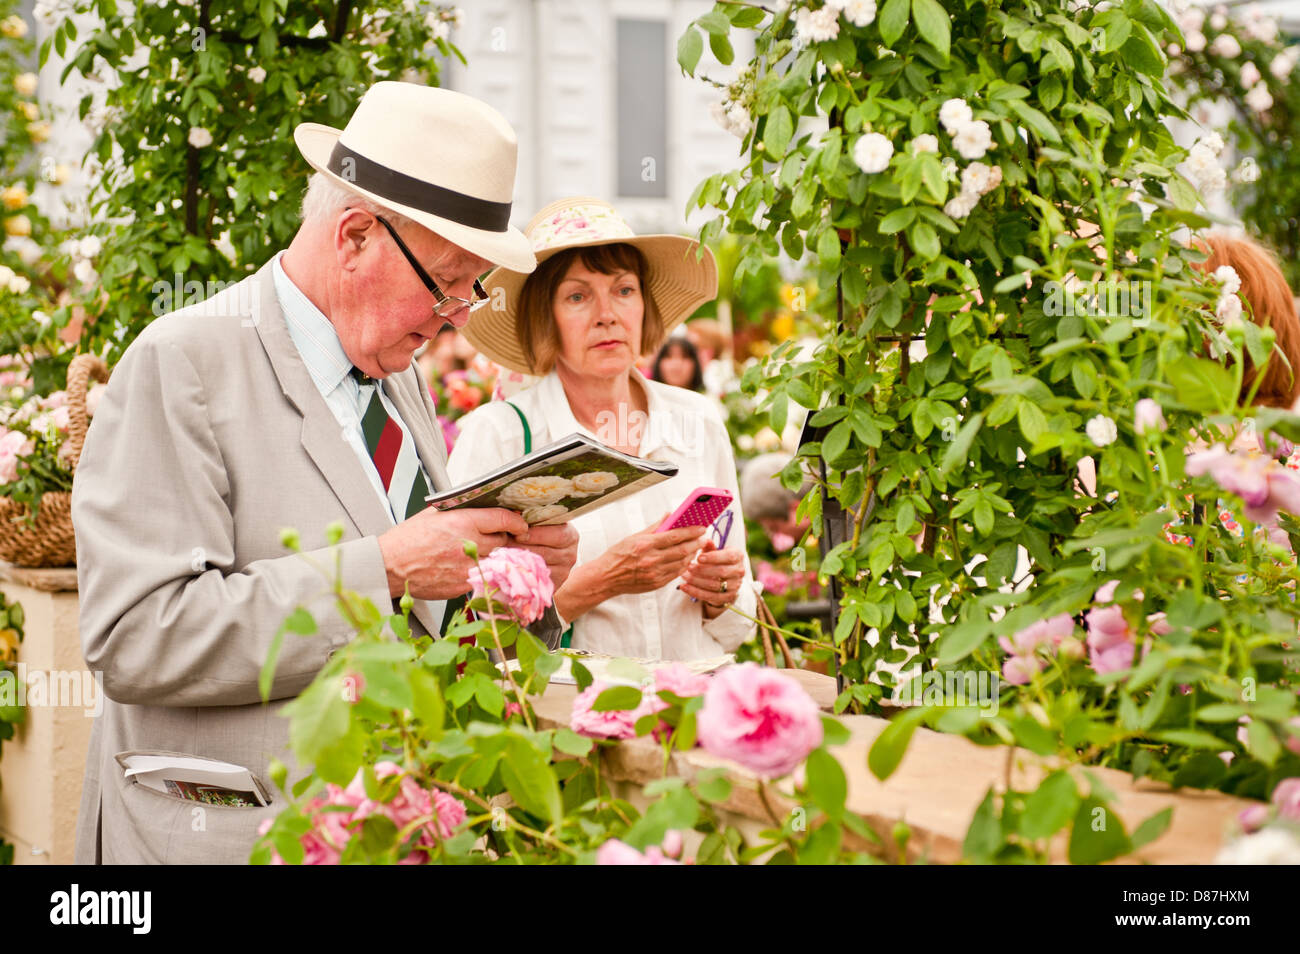 LONDON, UK - 22 May 2012: visitors at the RHS Chelsea Flower Show 2012. Stock Photo